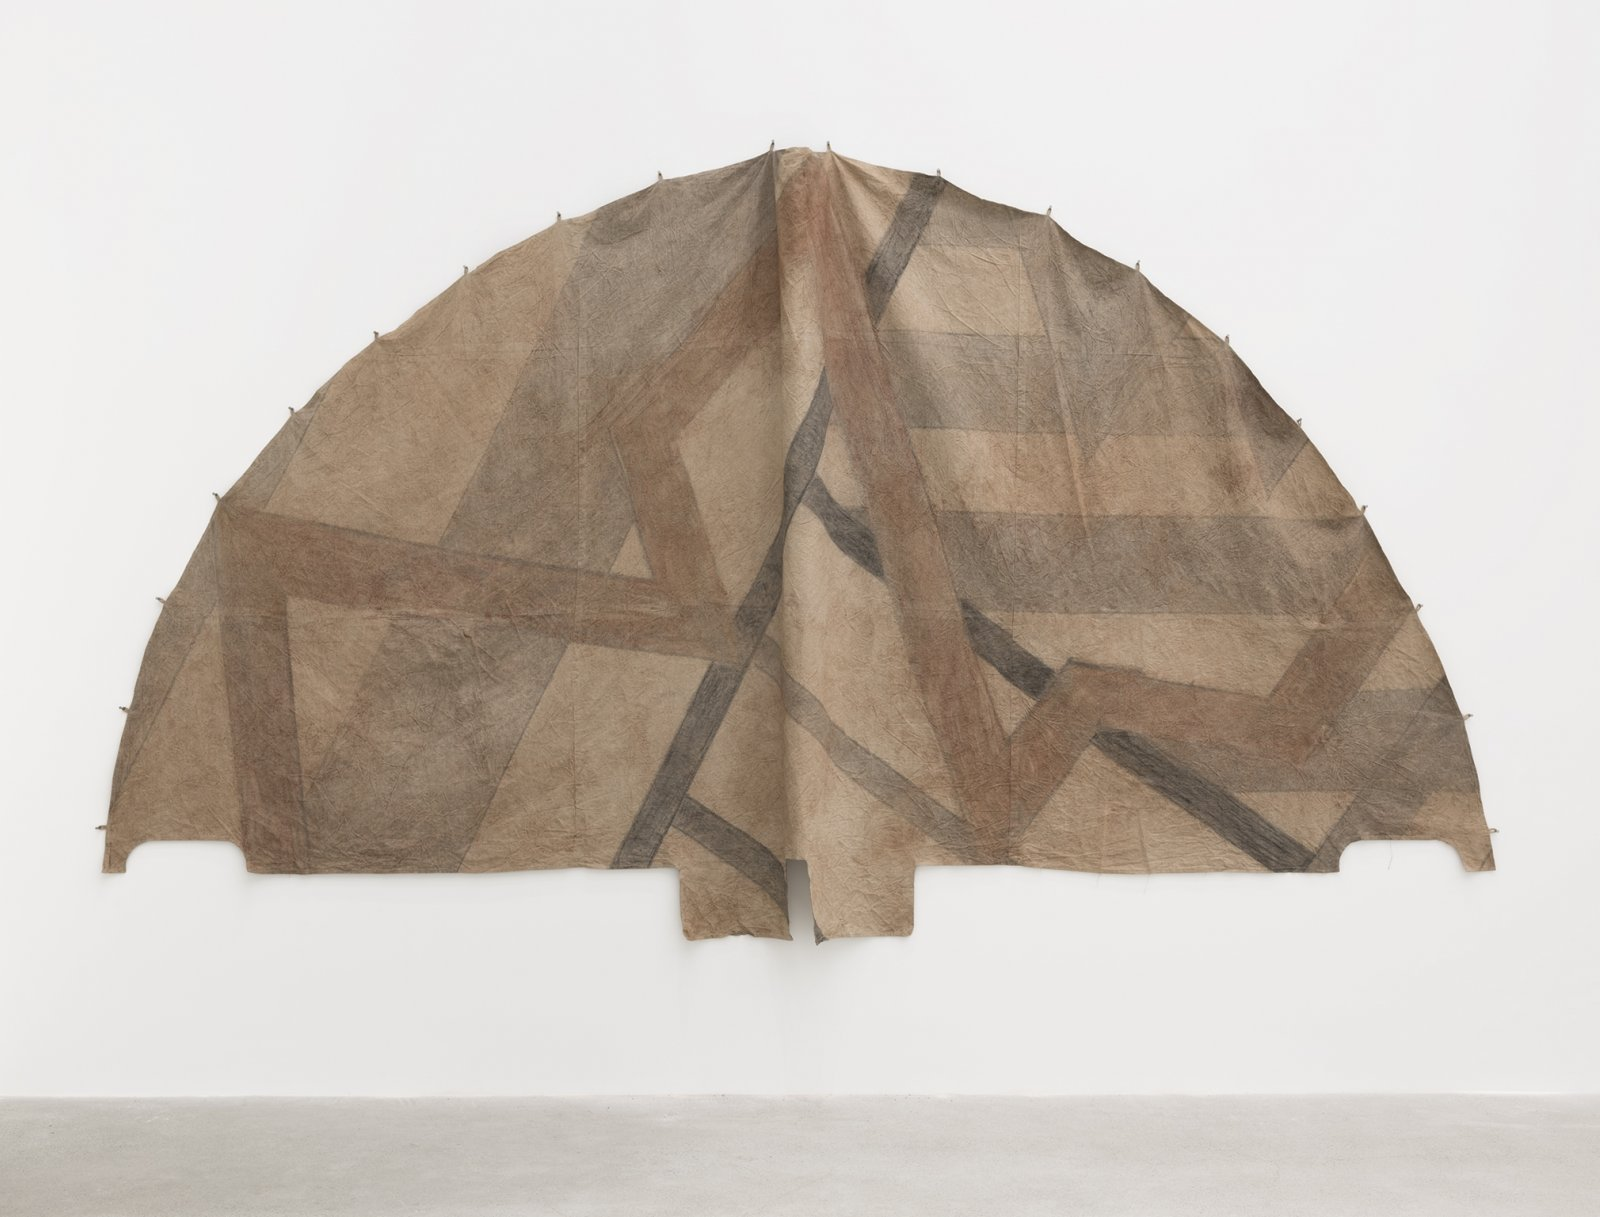 Duane Linklater, Tipi cover for new old geometries / little door for Sassa, 2018, digital print on hand-dyed linen, sumac, charcoal, nails, 110 x 210 in. (278 x 533 cm)